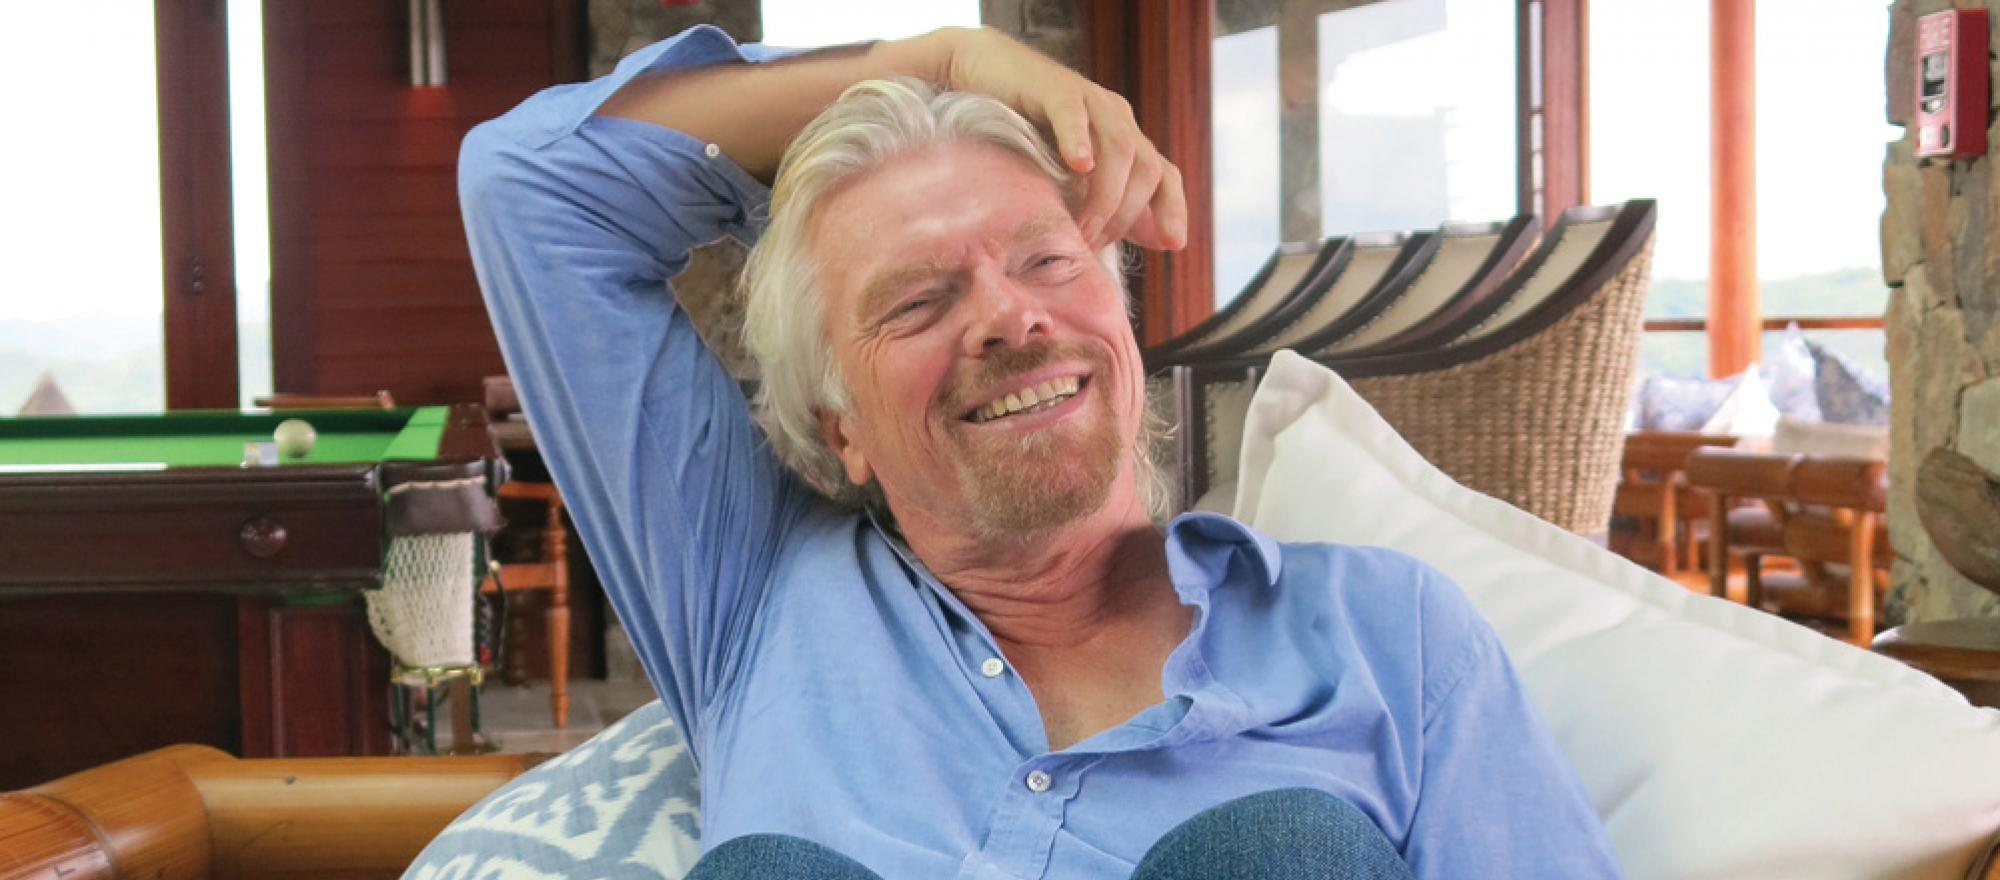 Sir Richard Branson (Photo: Margie Goldsmith)